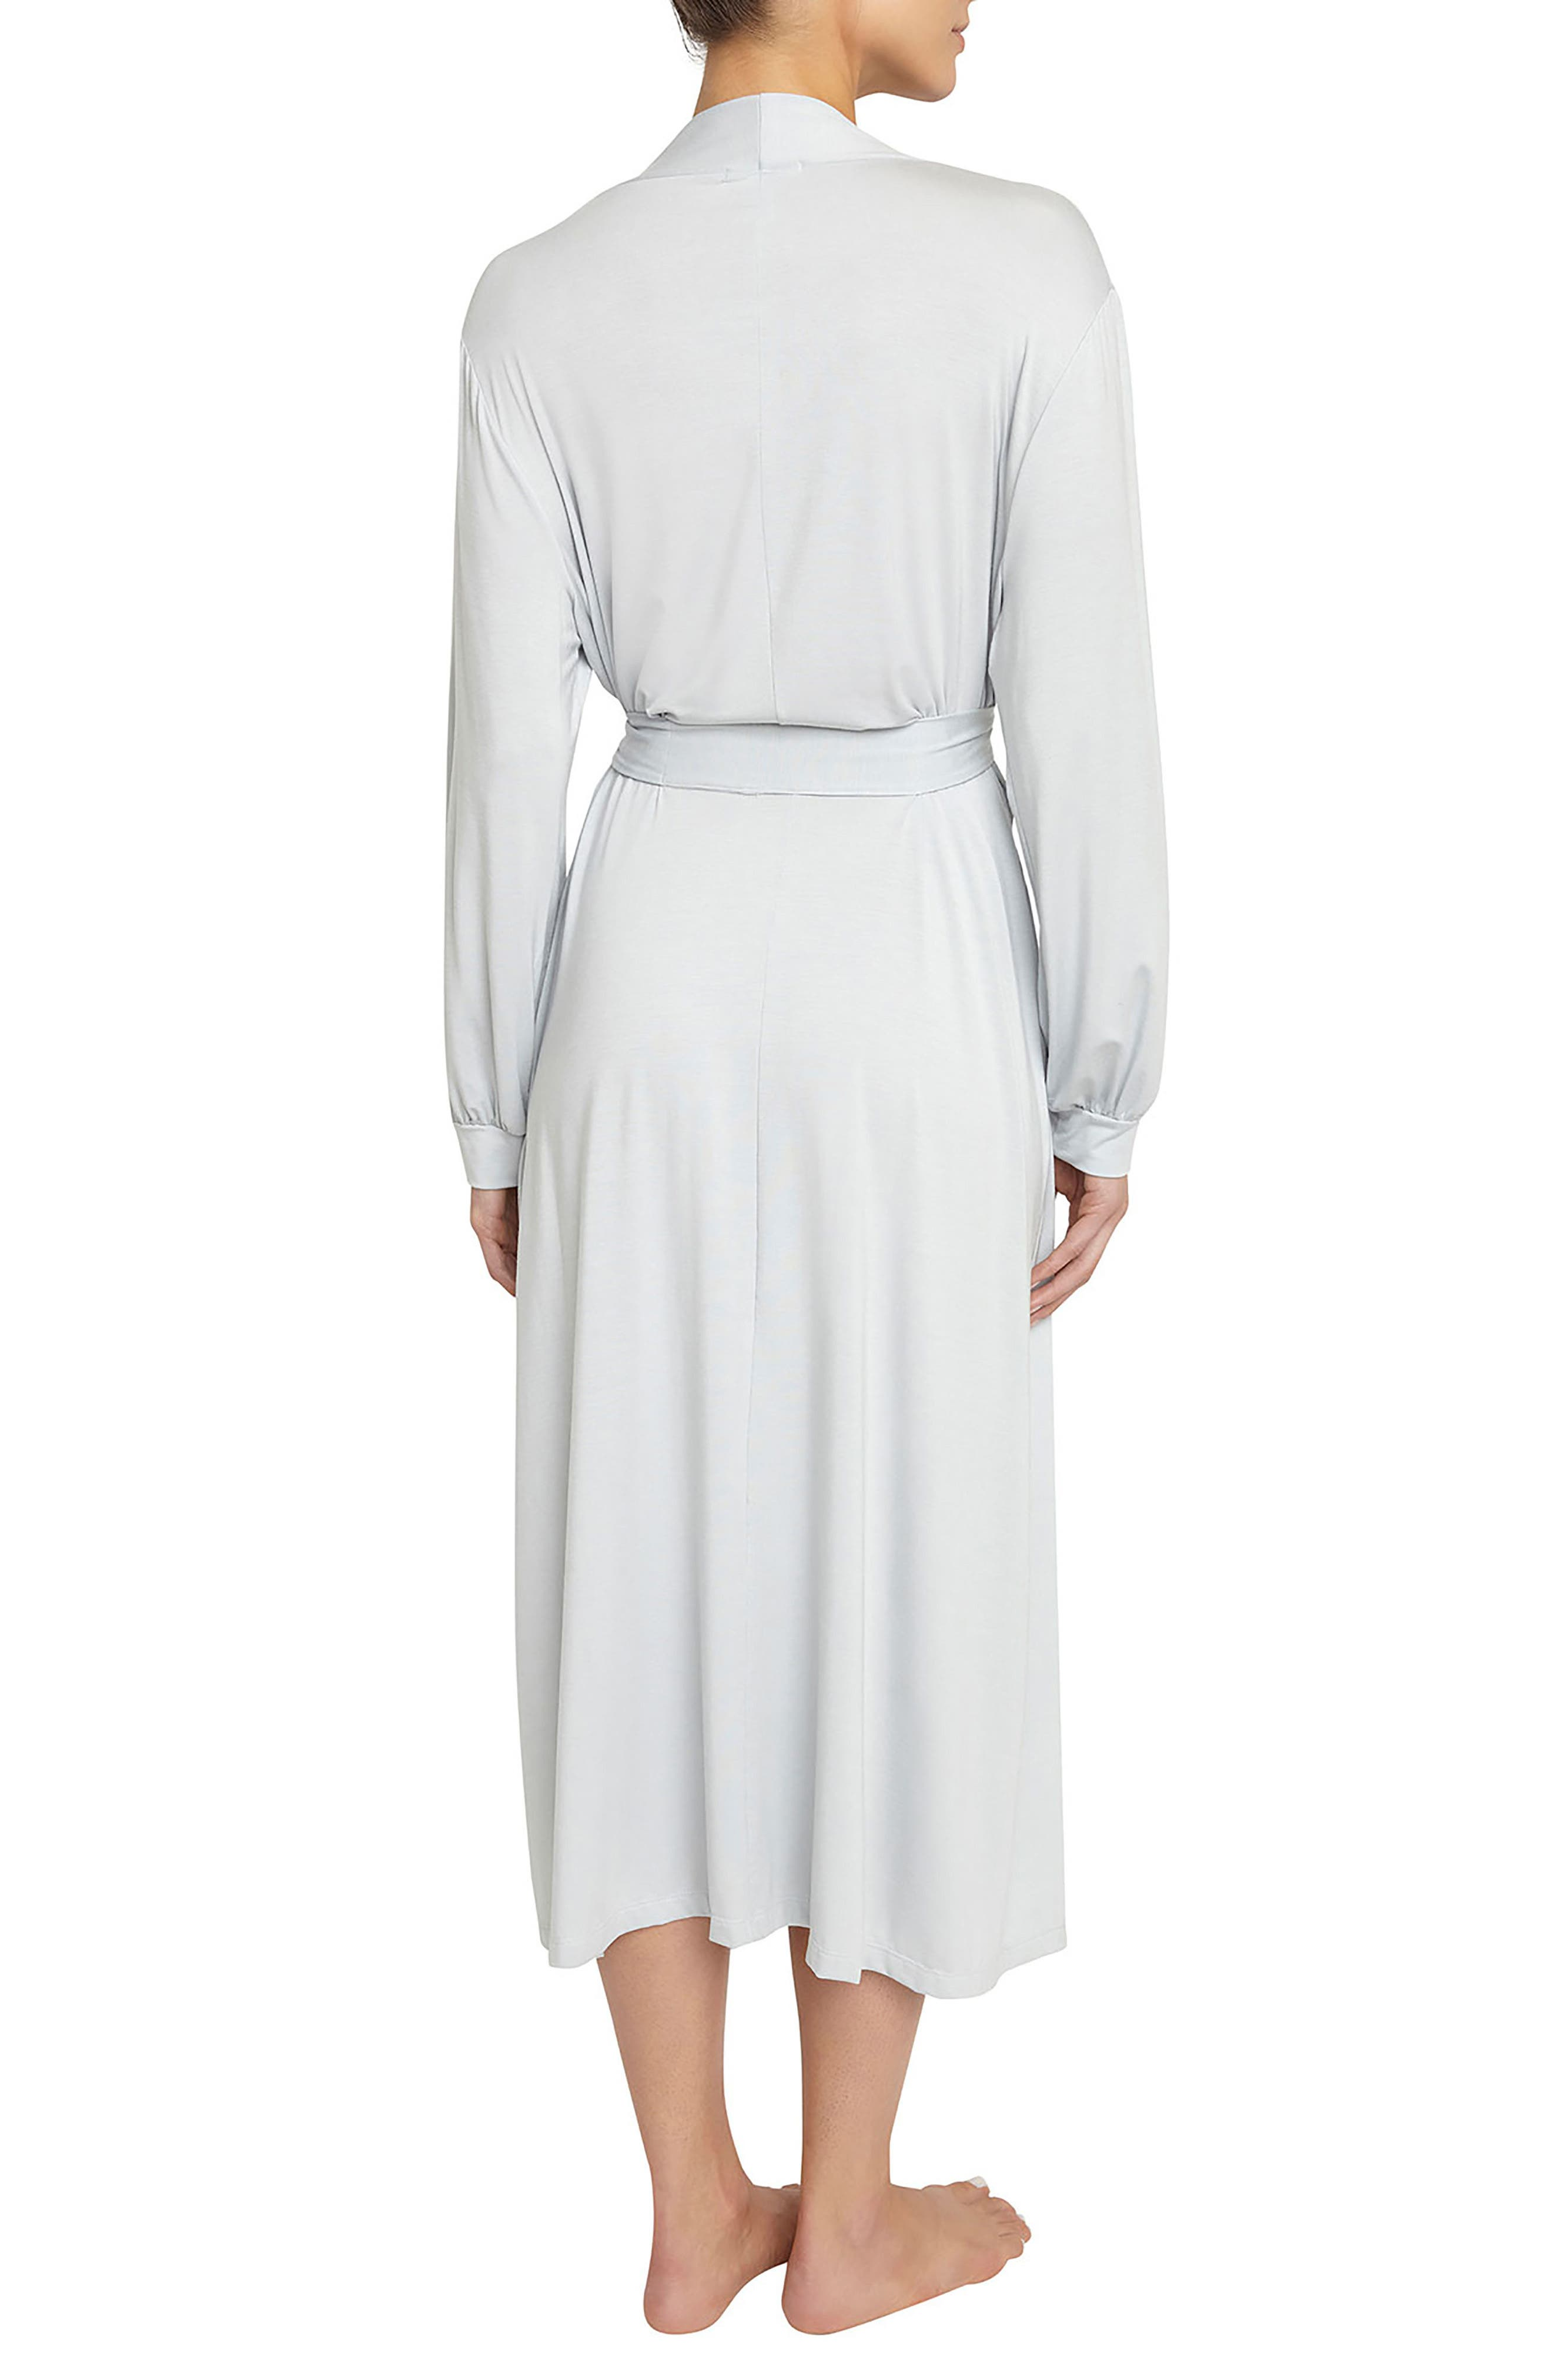 Elvia Robe,                             Alternate thumbnail 2, color,                             458